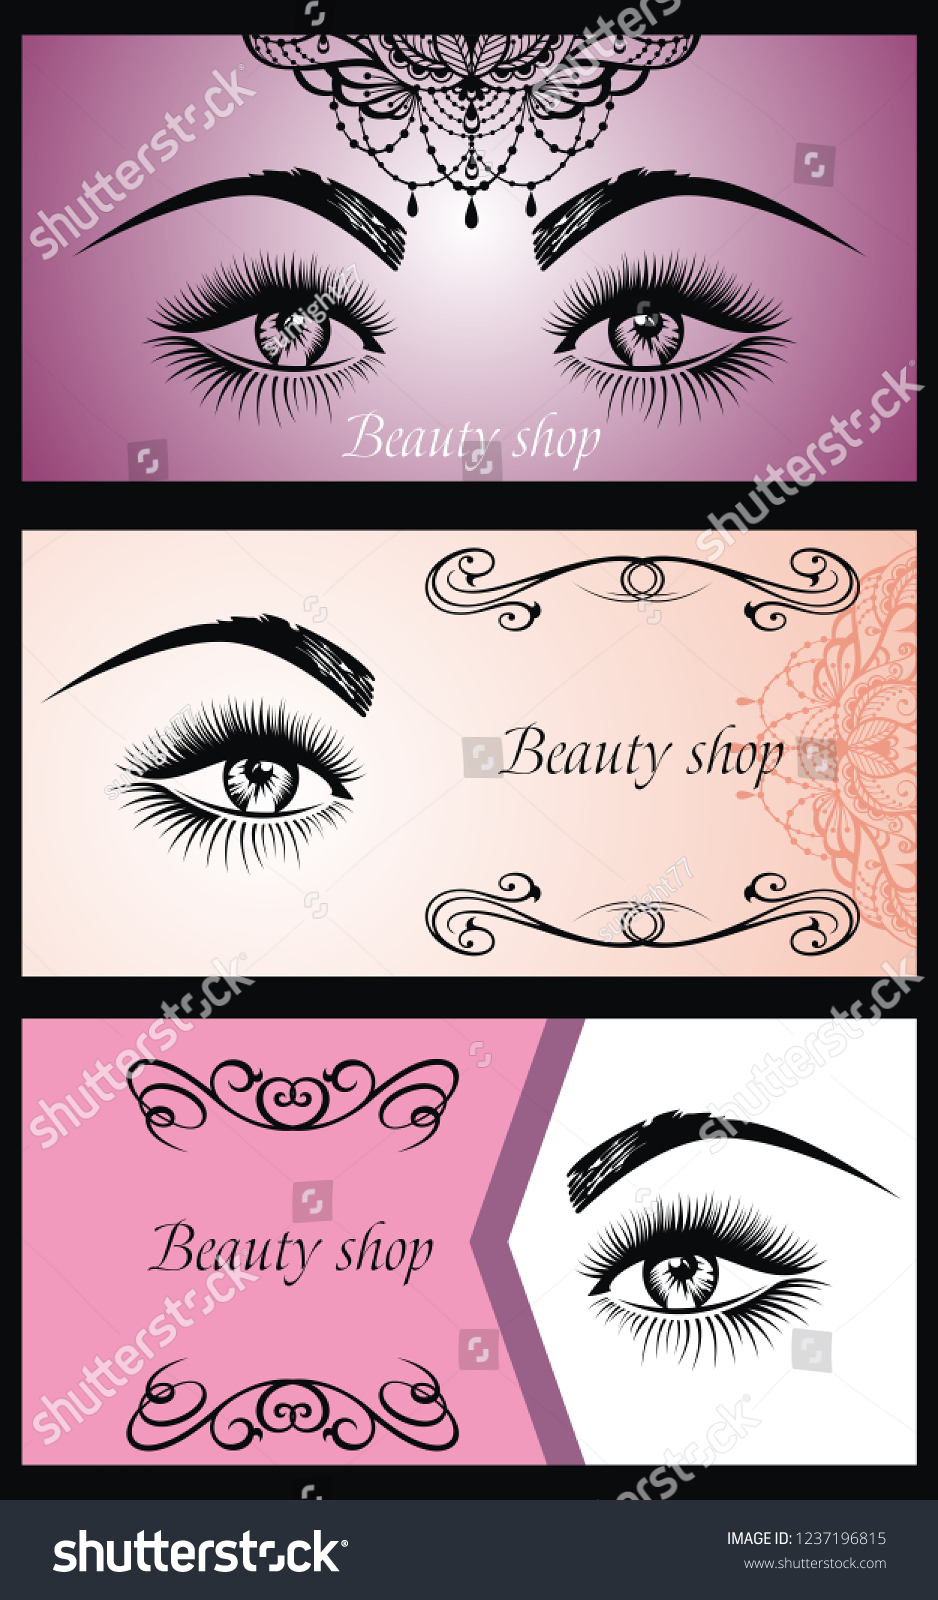 23d3327d519 Banners for beauty salon, face and skin care product, cosmetics, makeup or  spa